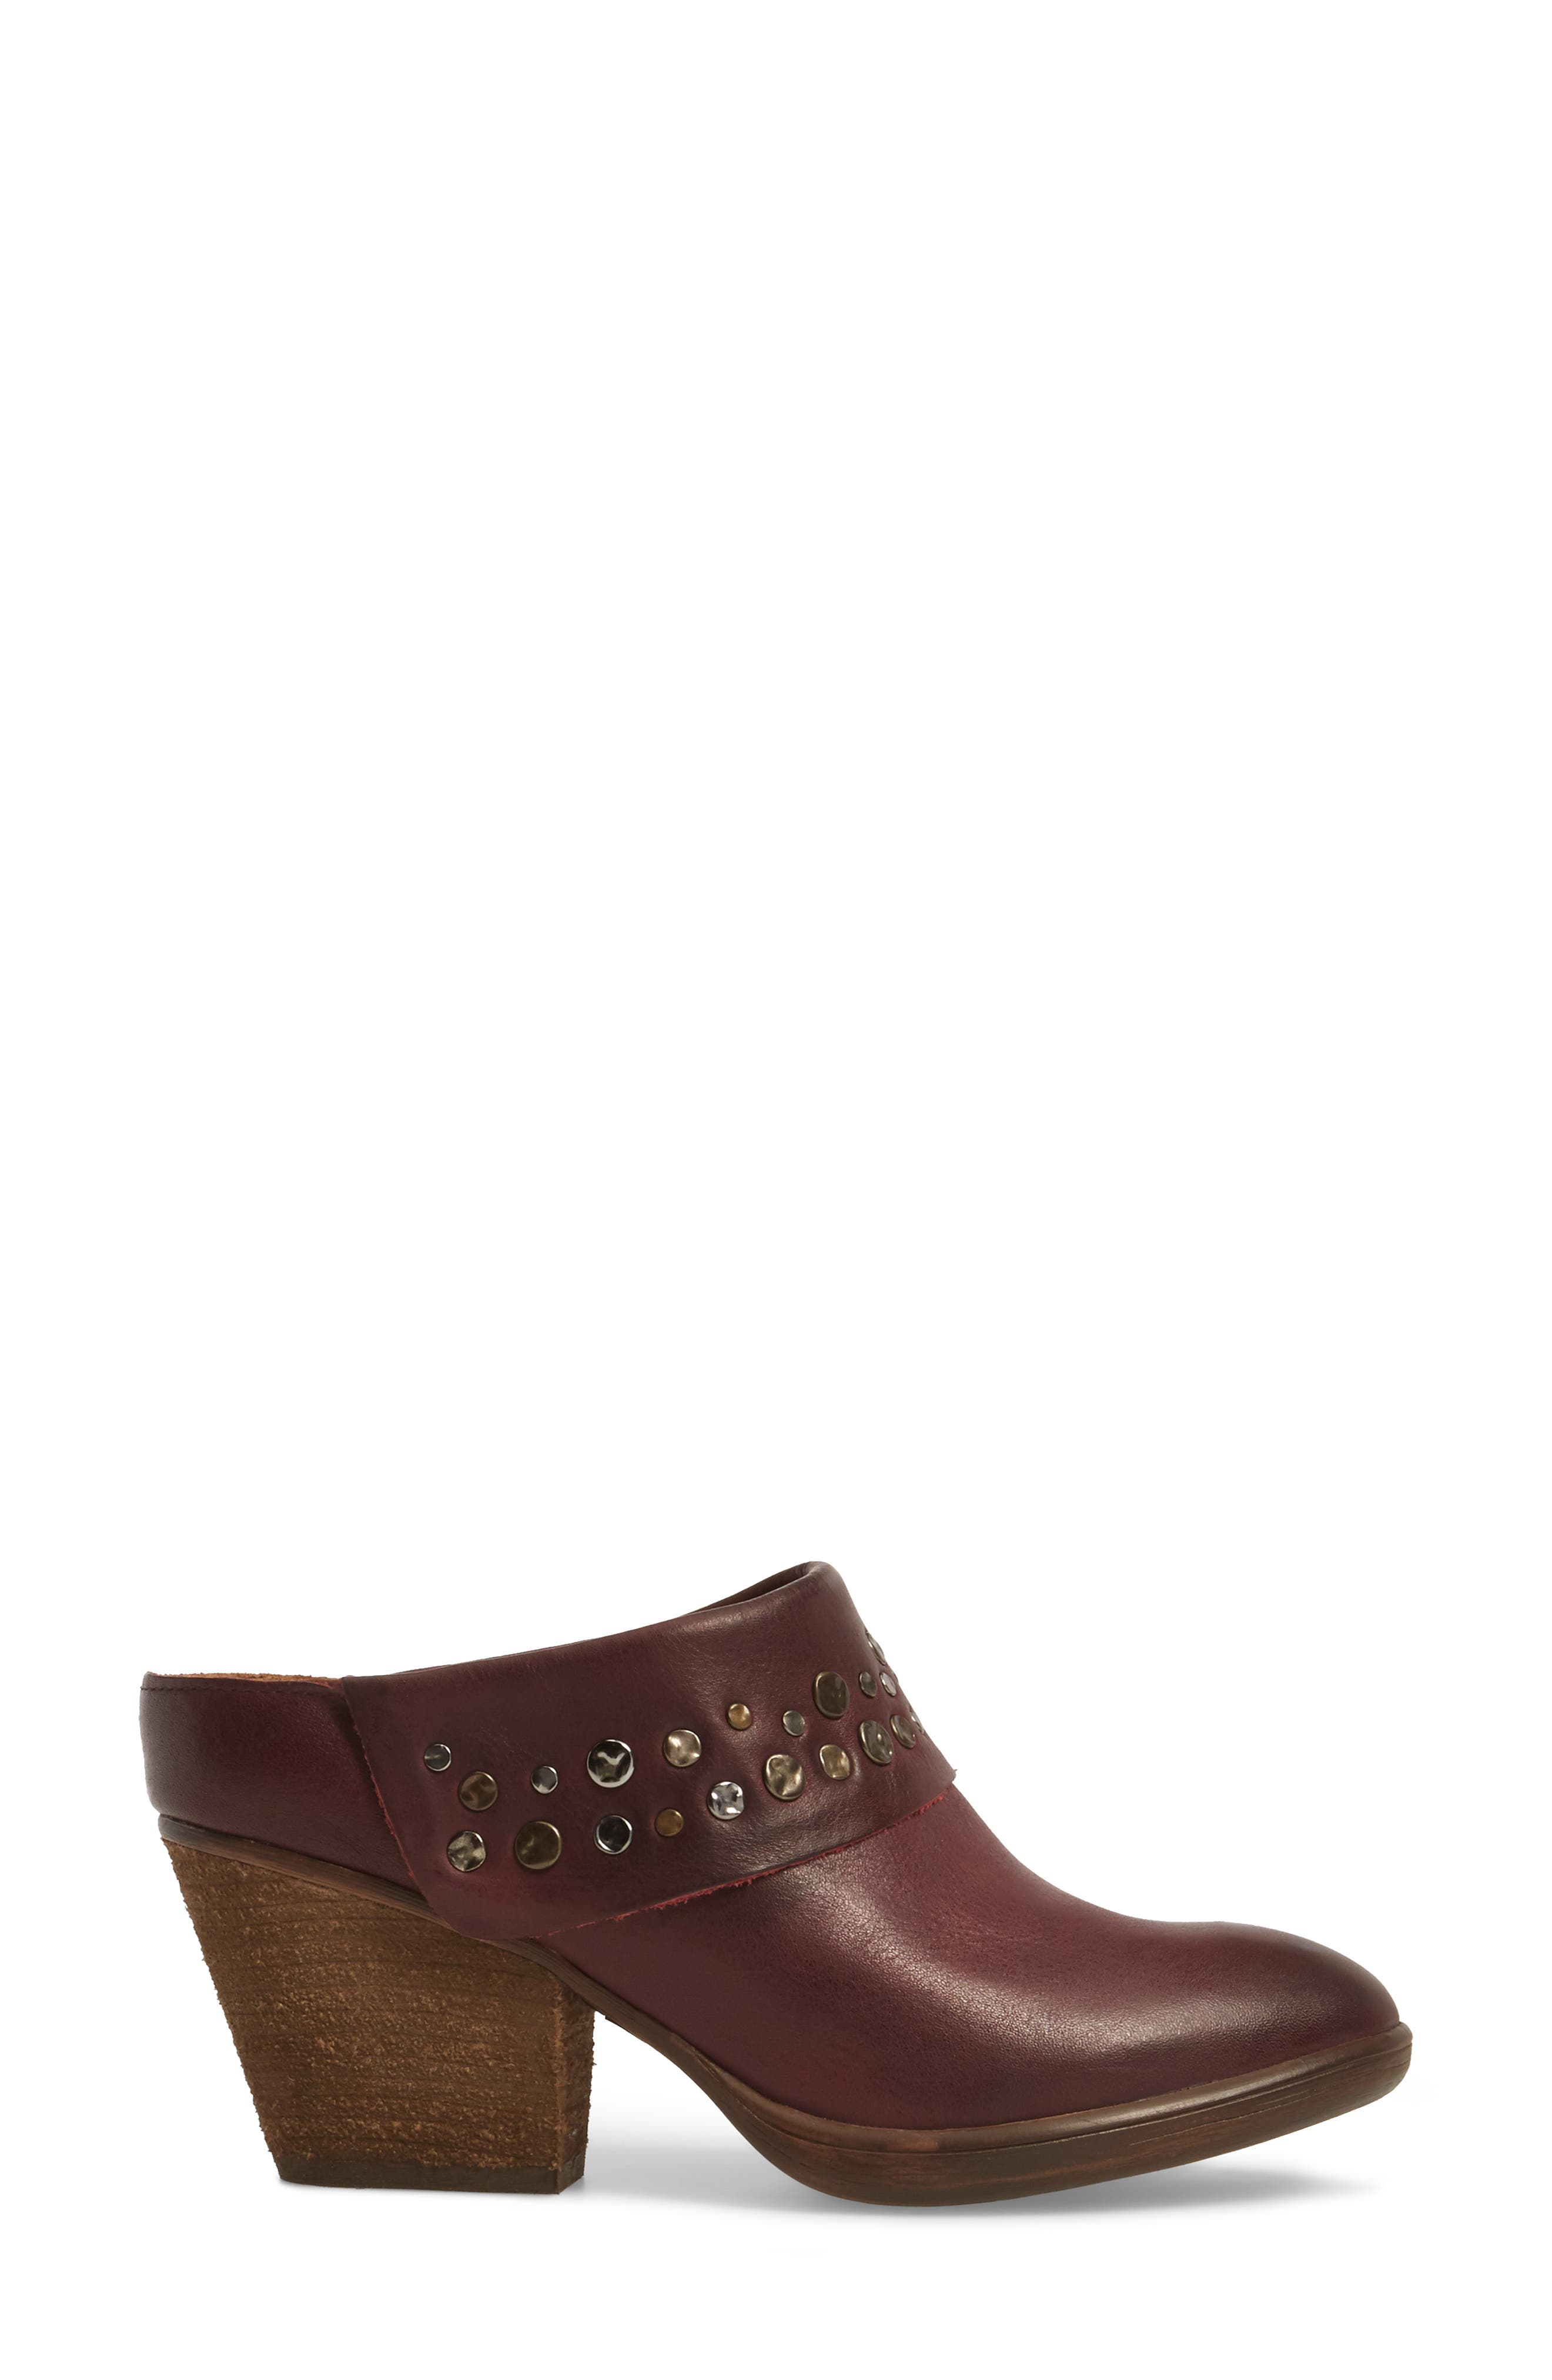 Gila Studded Mule,                             Alternate thumbnail 3, color,                             MARSALA RED LEATHER